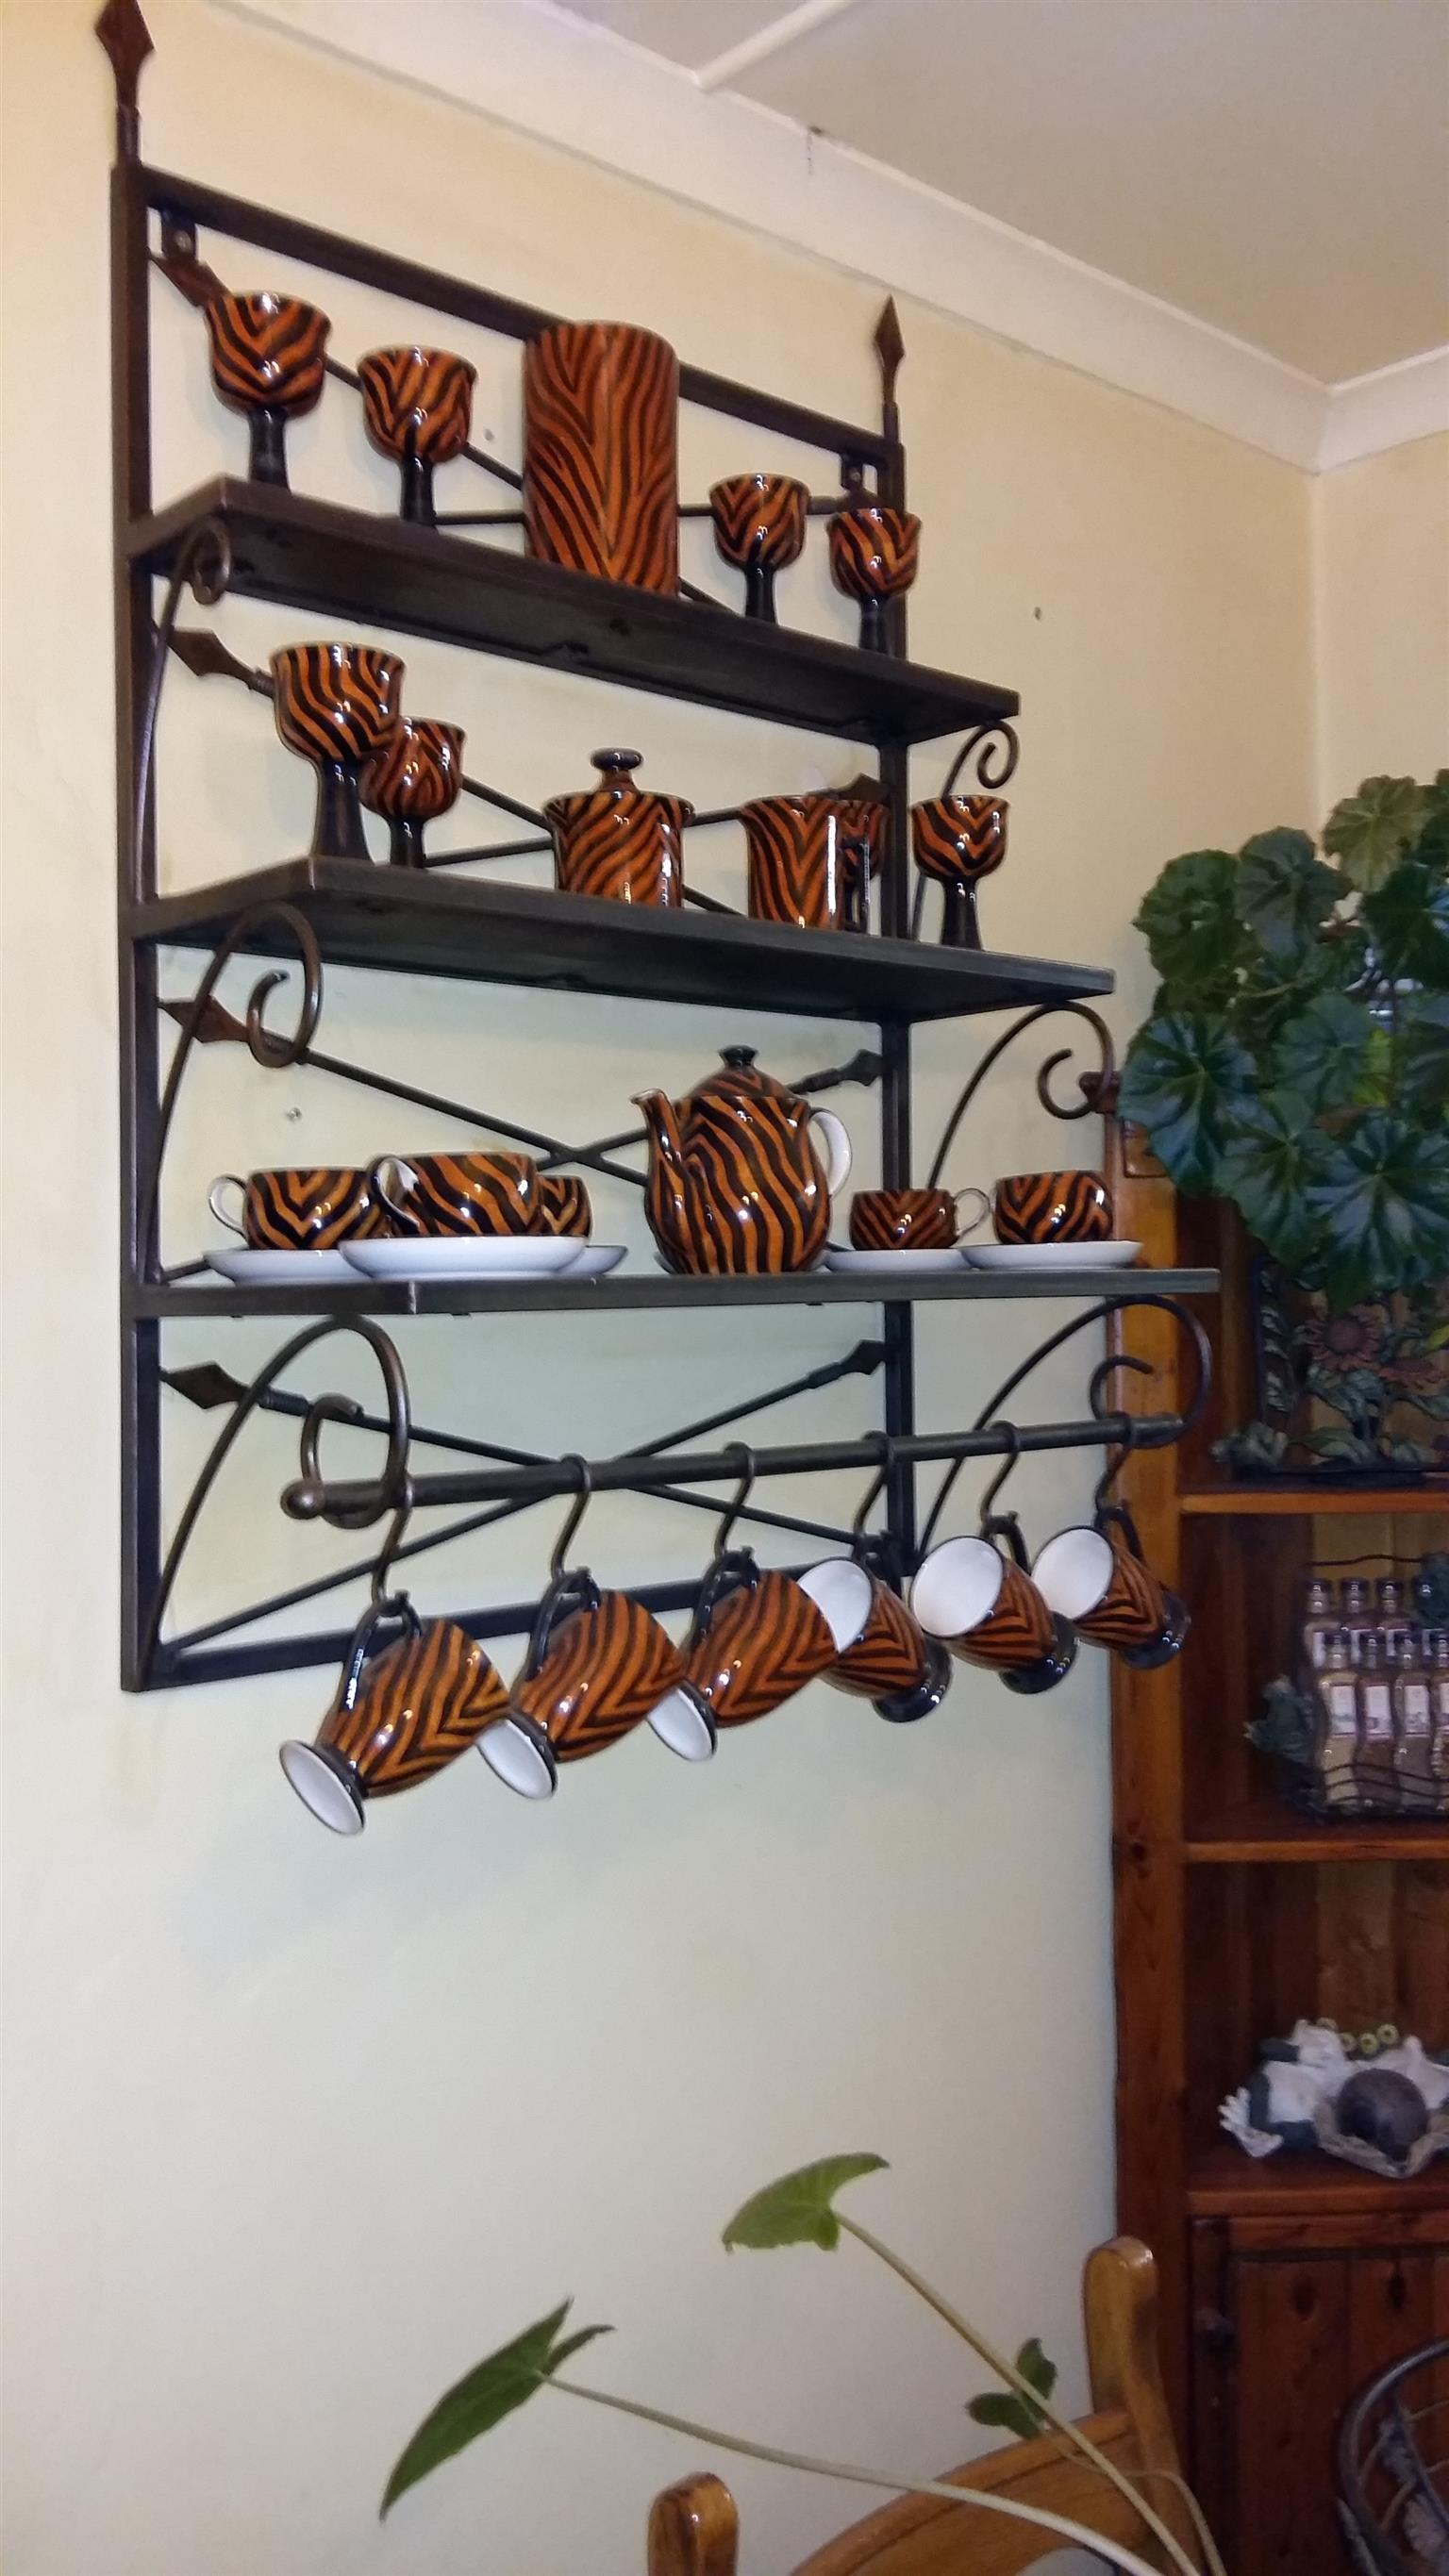 SHELF UNIT FOR WALL IN WROUGHT IRON WITH CROCKERY SET.